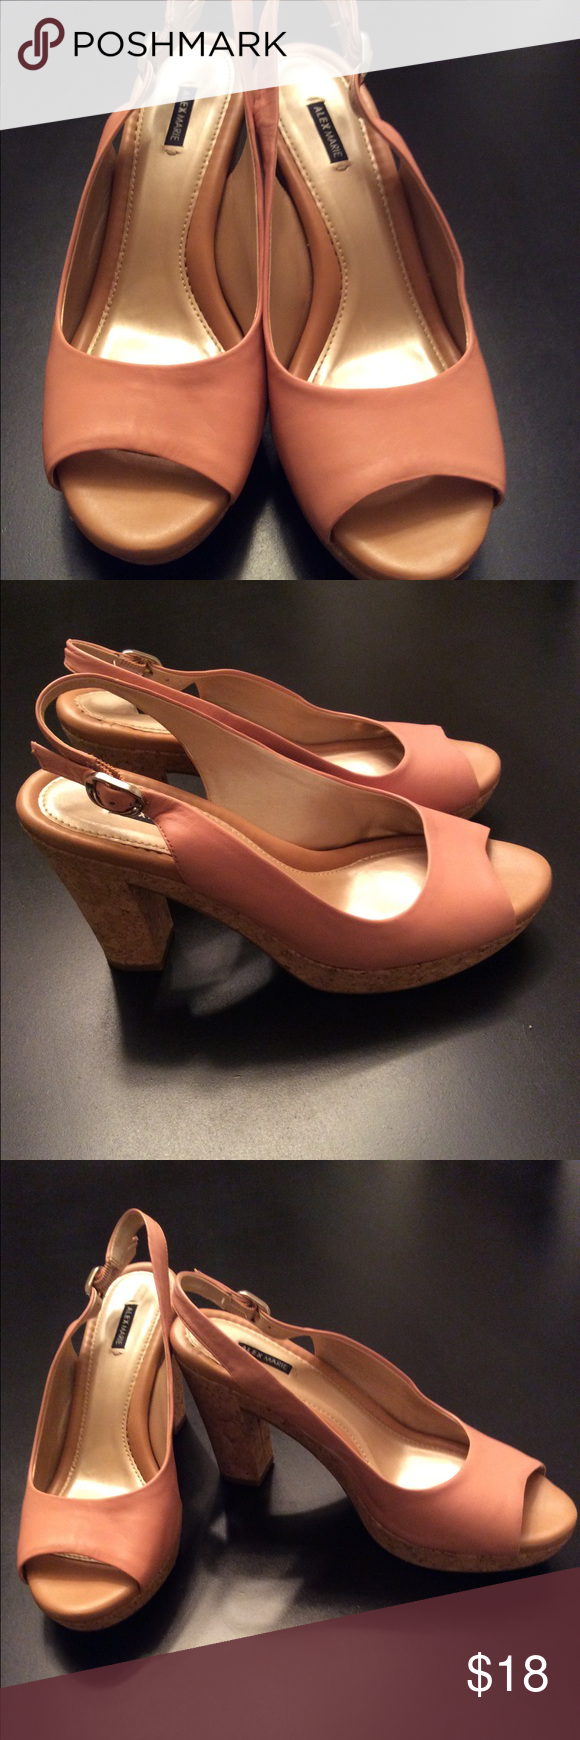 Alex Marie:  Sling Back Peep Toe Heel Sandal Soft Leather Cork Heel Sandal.  The color is Salmon pink. It's a Sandal that can be worn for 8 hrs and your feel will not hurt. Great 👍🏾 to wear with just about anything in your closet. Good condition Alex Marie Shoes Sandals